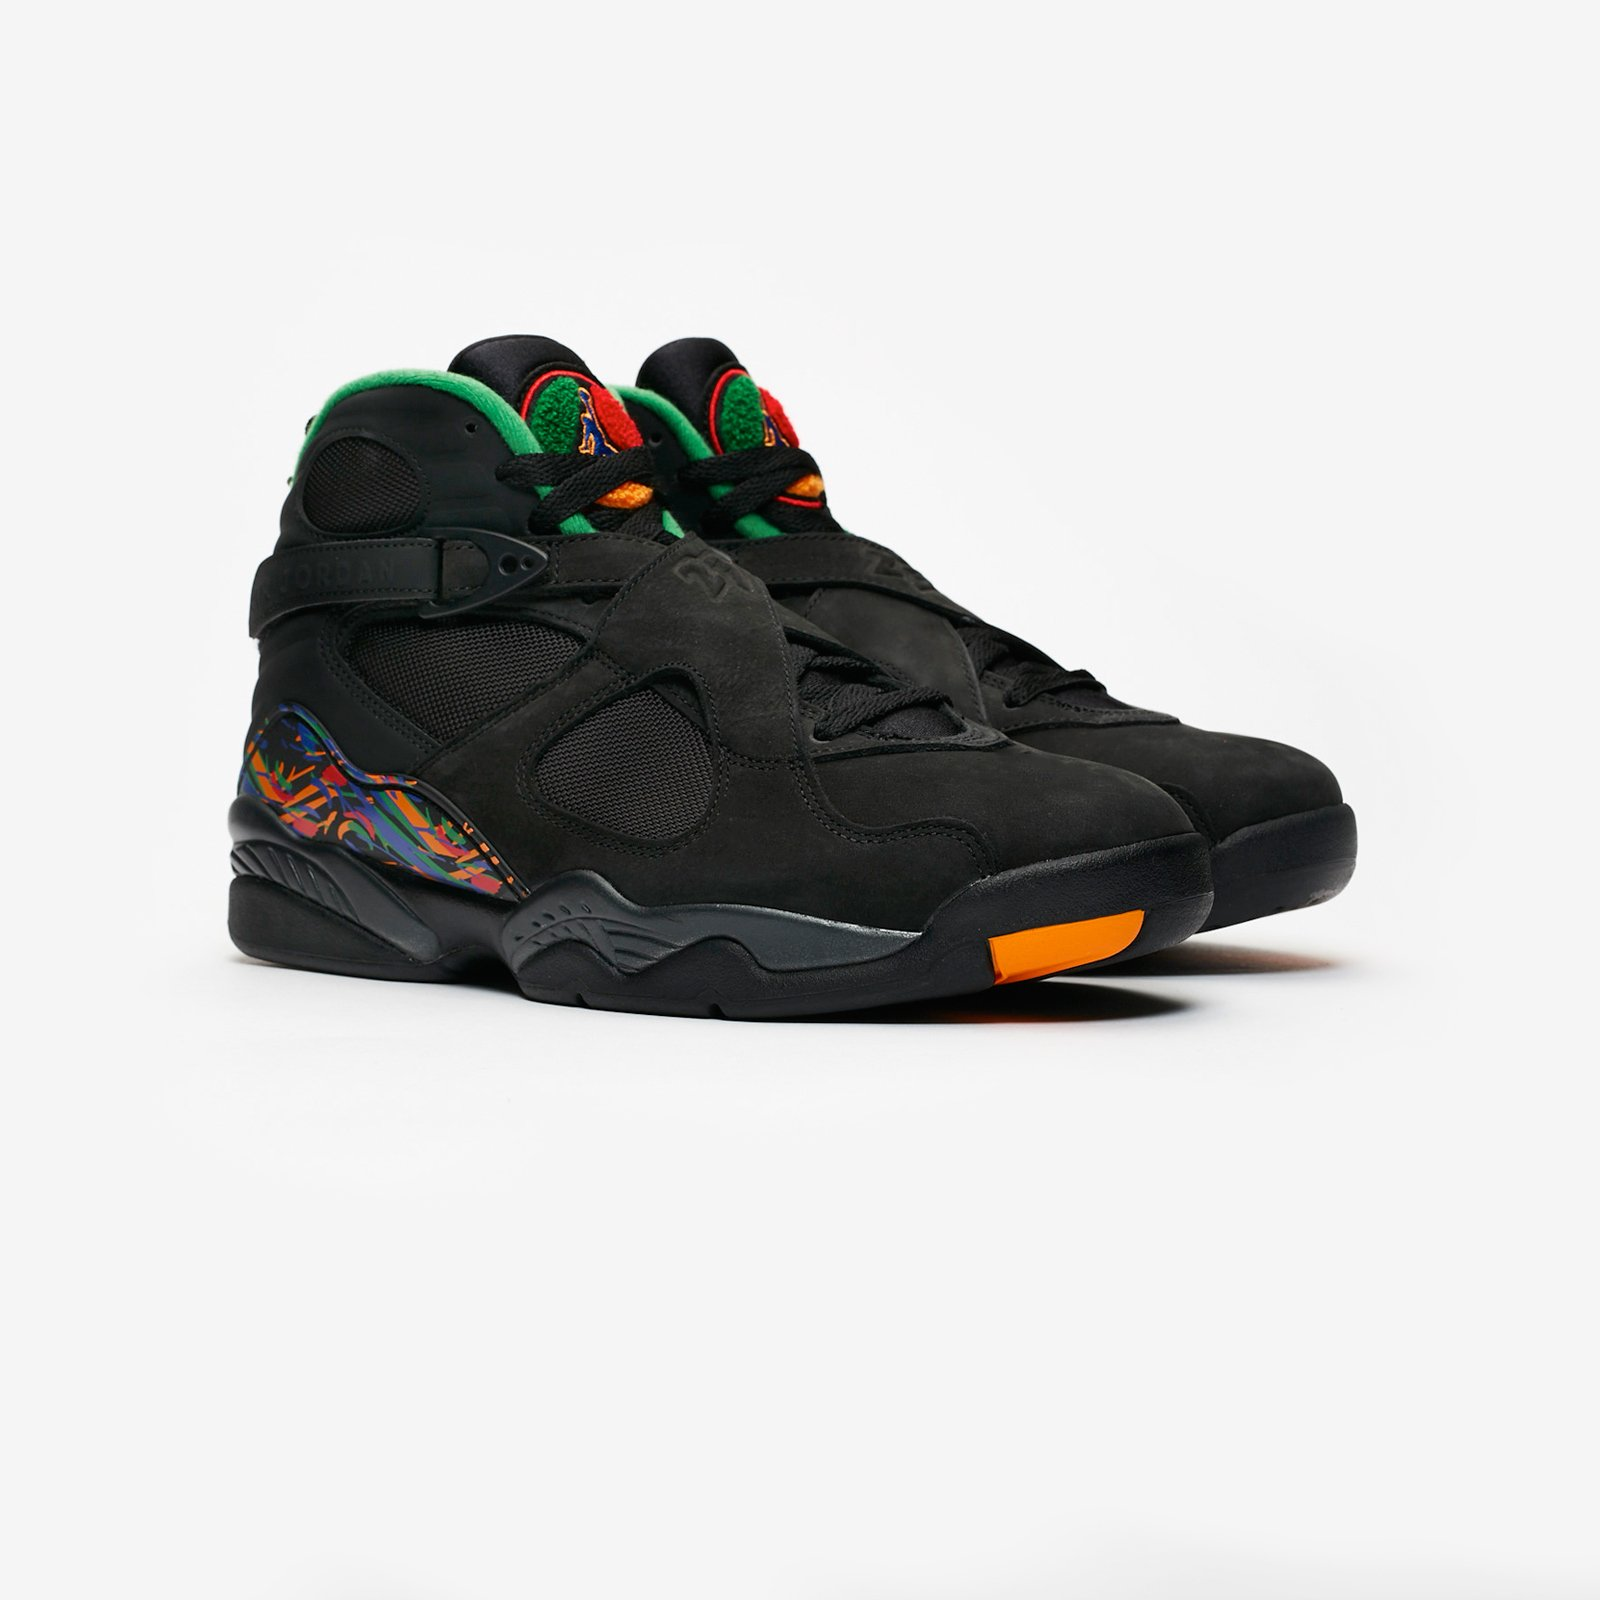 huge discount 0ca7a 63d77 Jordan Brand Air Jordan 8 Retro - 305381-004 ...